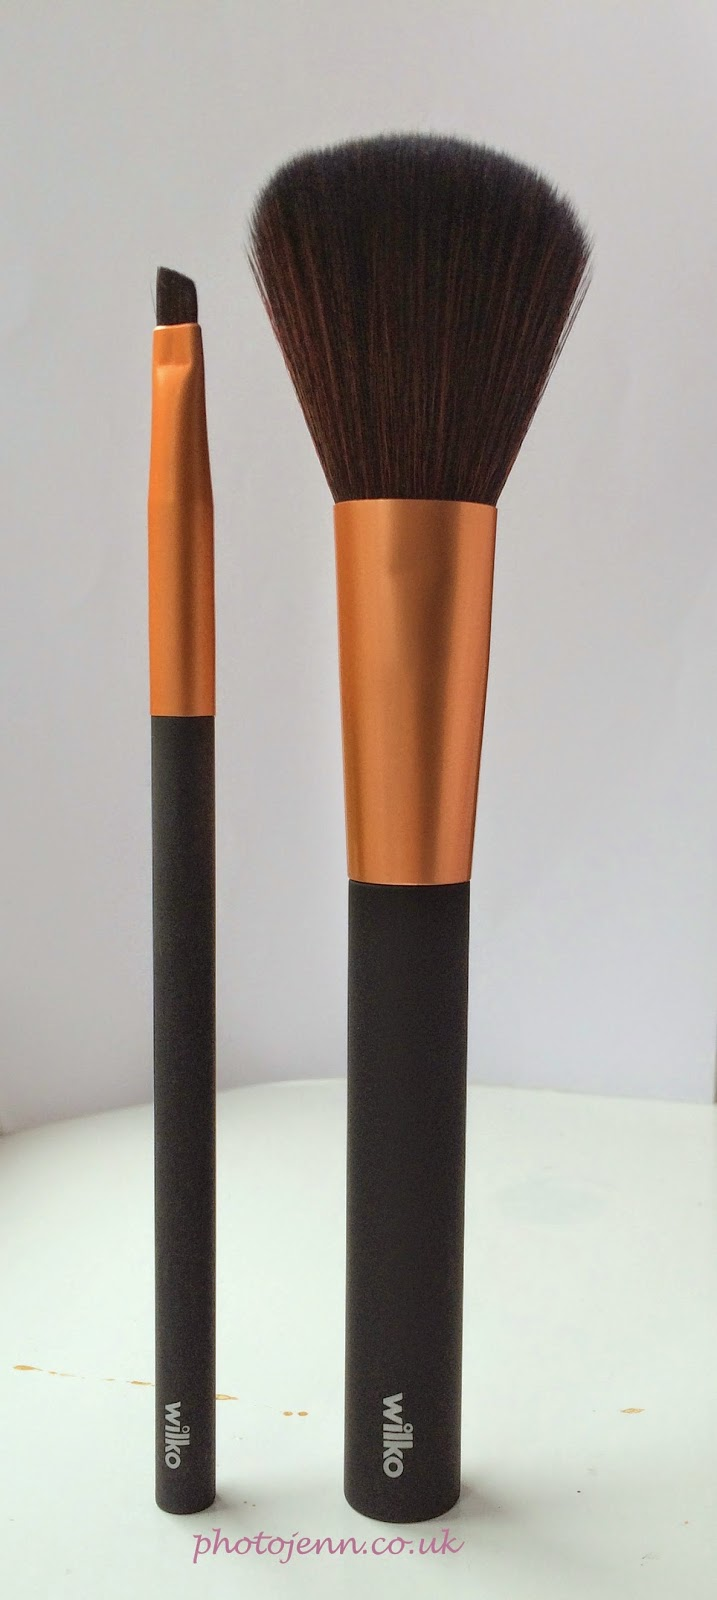 wilko-premium-make-up-brushes